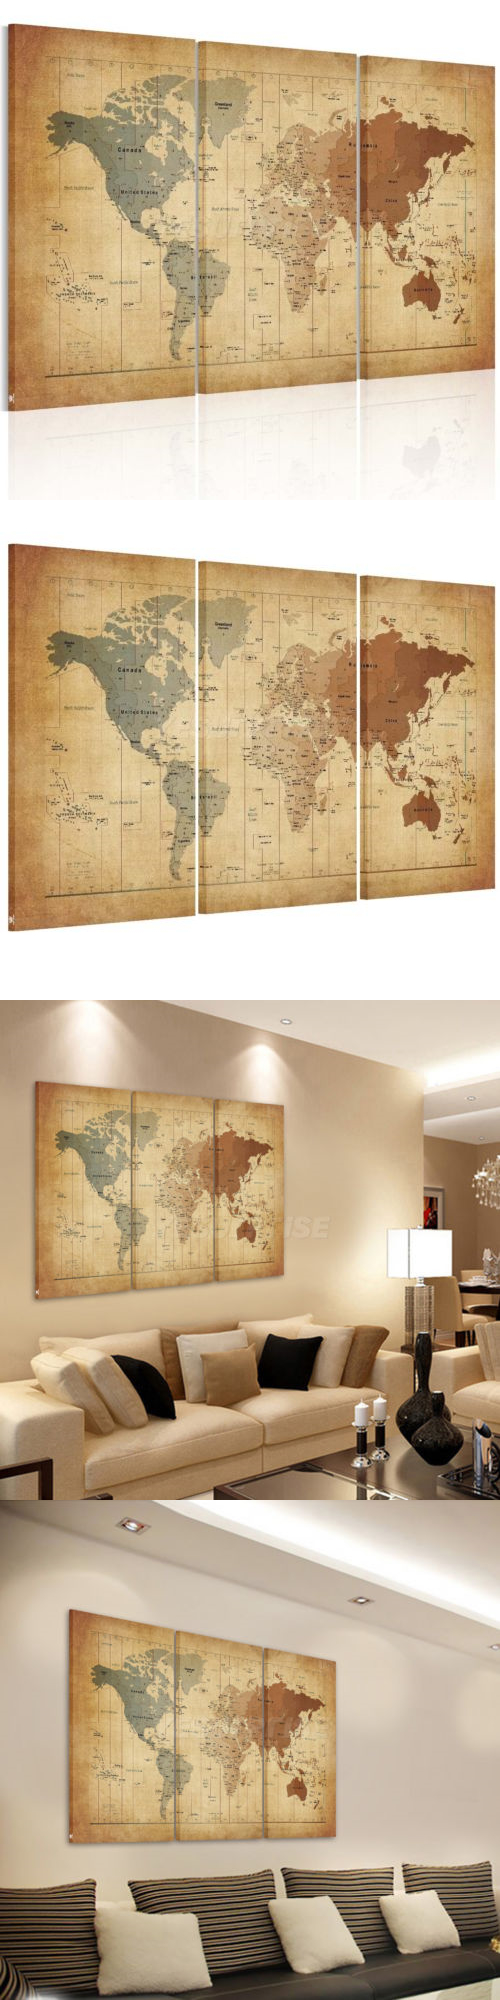 Art Paintings Mixed Media Collage: Vintage Framed World Map Canvas ...